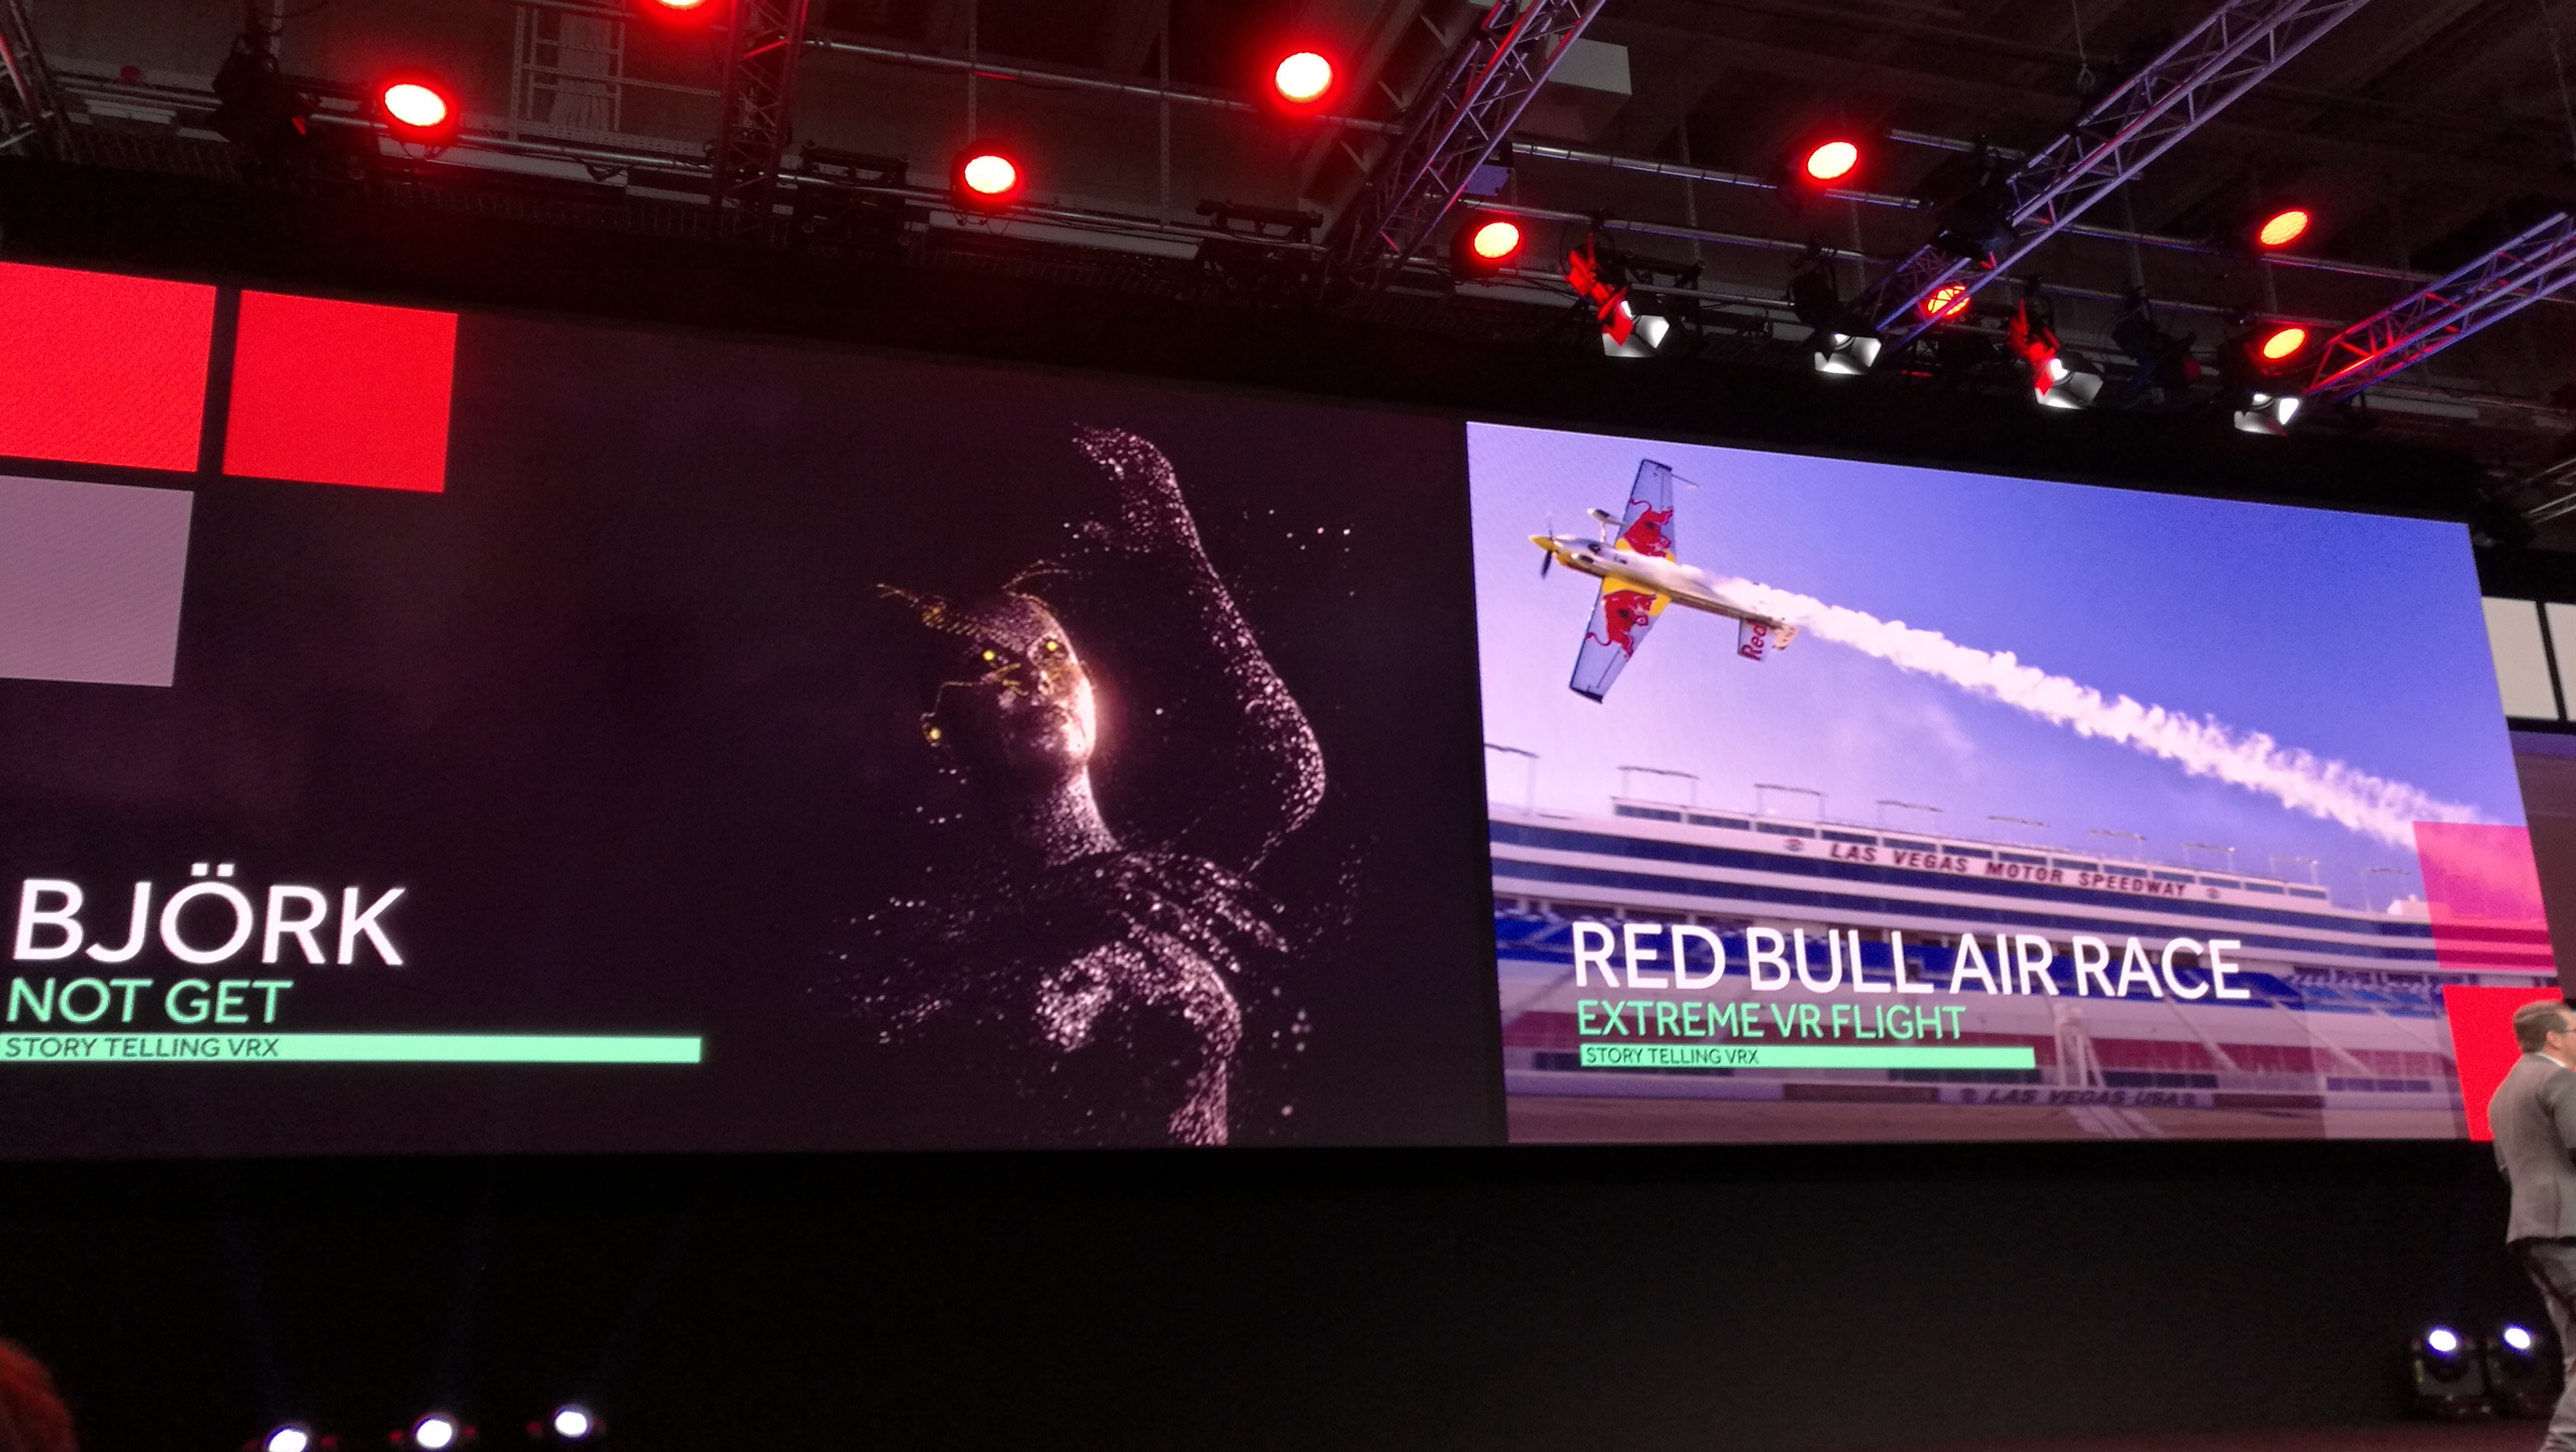 ifa 2016 live blog of amd keynote with mark papermaster cto